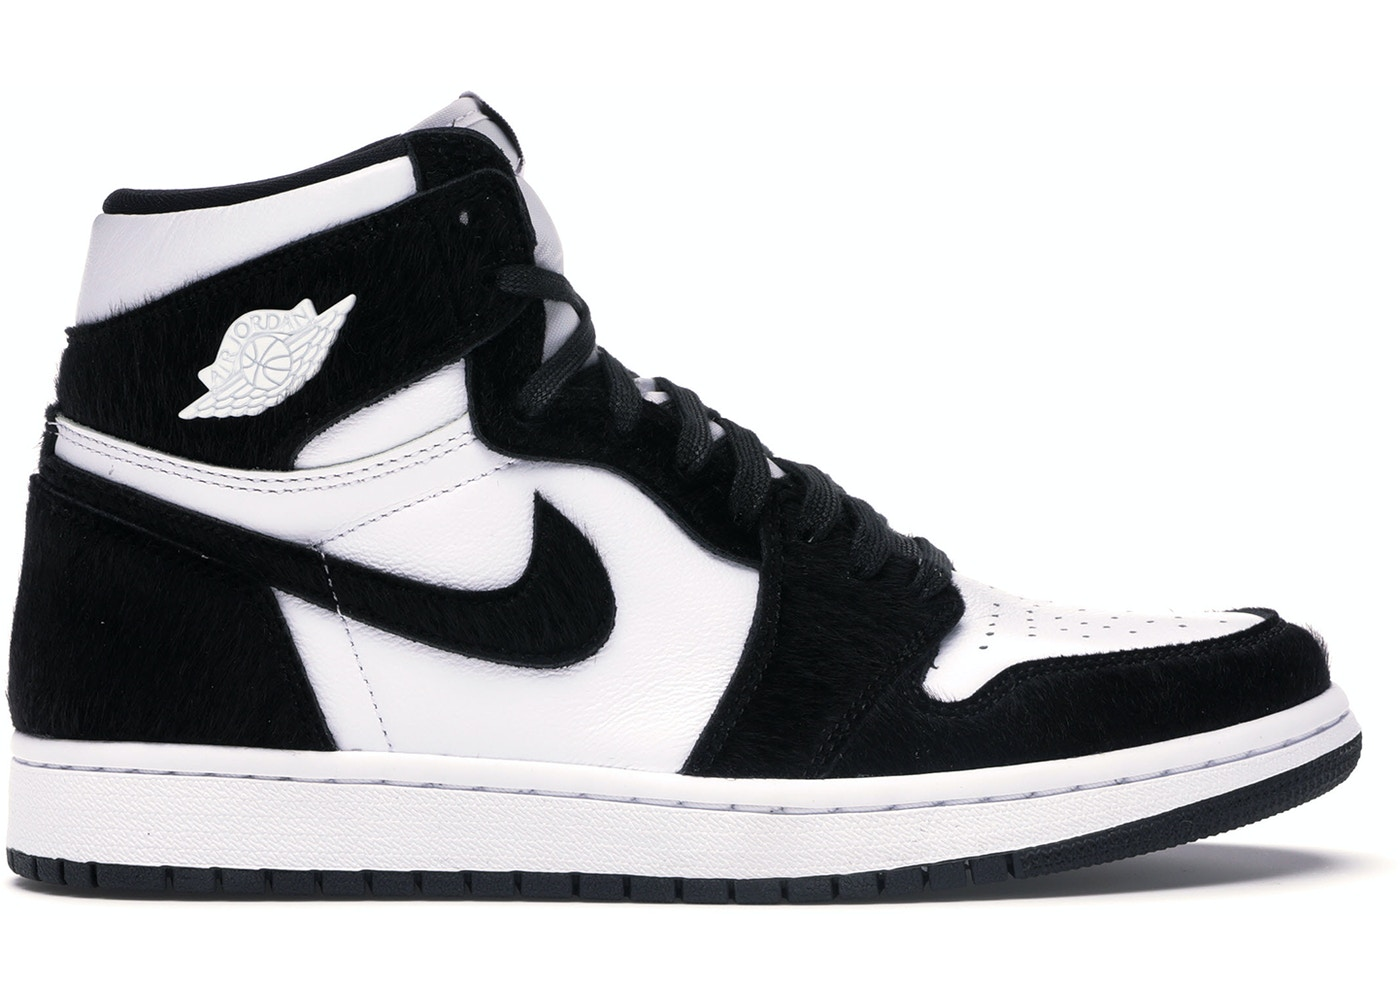 65fe19b6 Jordan 1 Retro High Twist (W) - CD0461-007